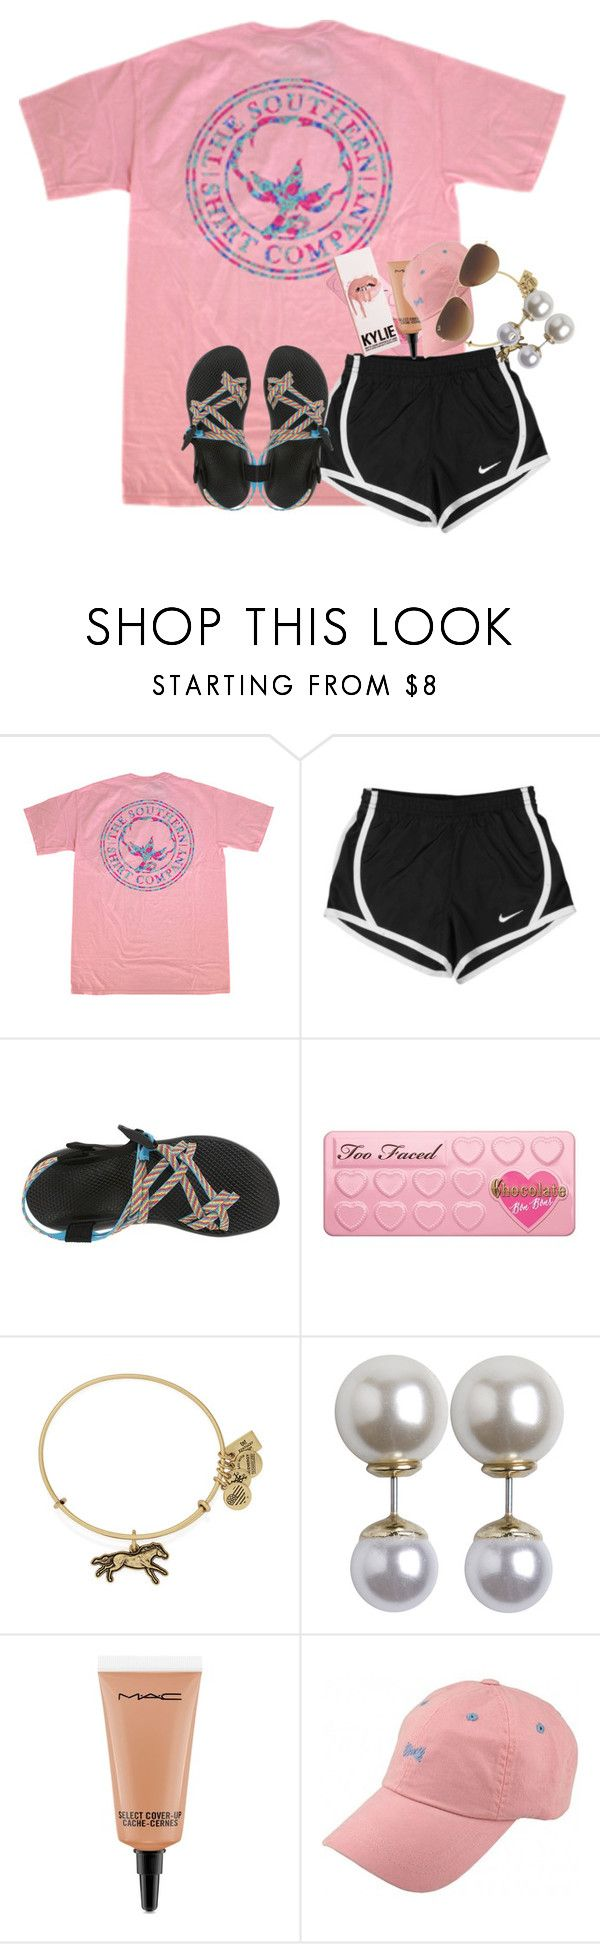 """orientation today"" by cristentaylor ❤ liked on Polyvore featuring NIKE, Chaco, Too Faced Cosmetics, Alex and Ani, Pieces, MAC Cosmetics and Ray-Ban"